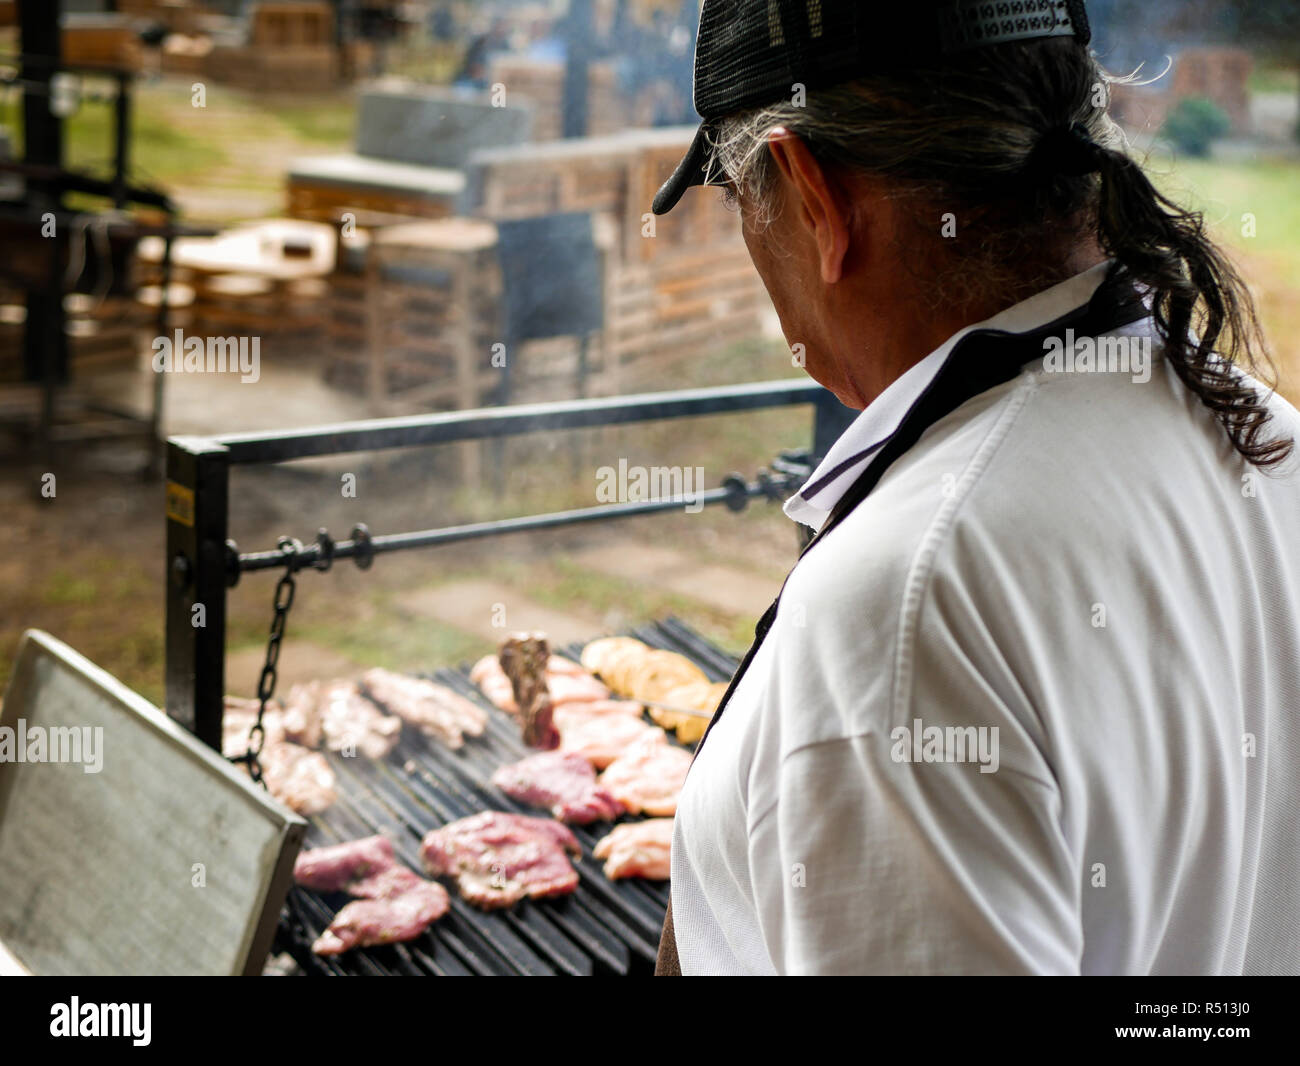 back of an old man with a pony tail making a barbecue for a party the meat is still raw - Stock Image